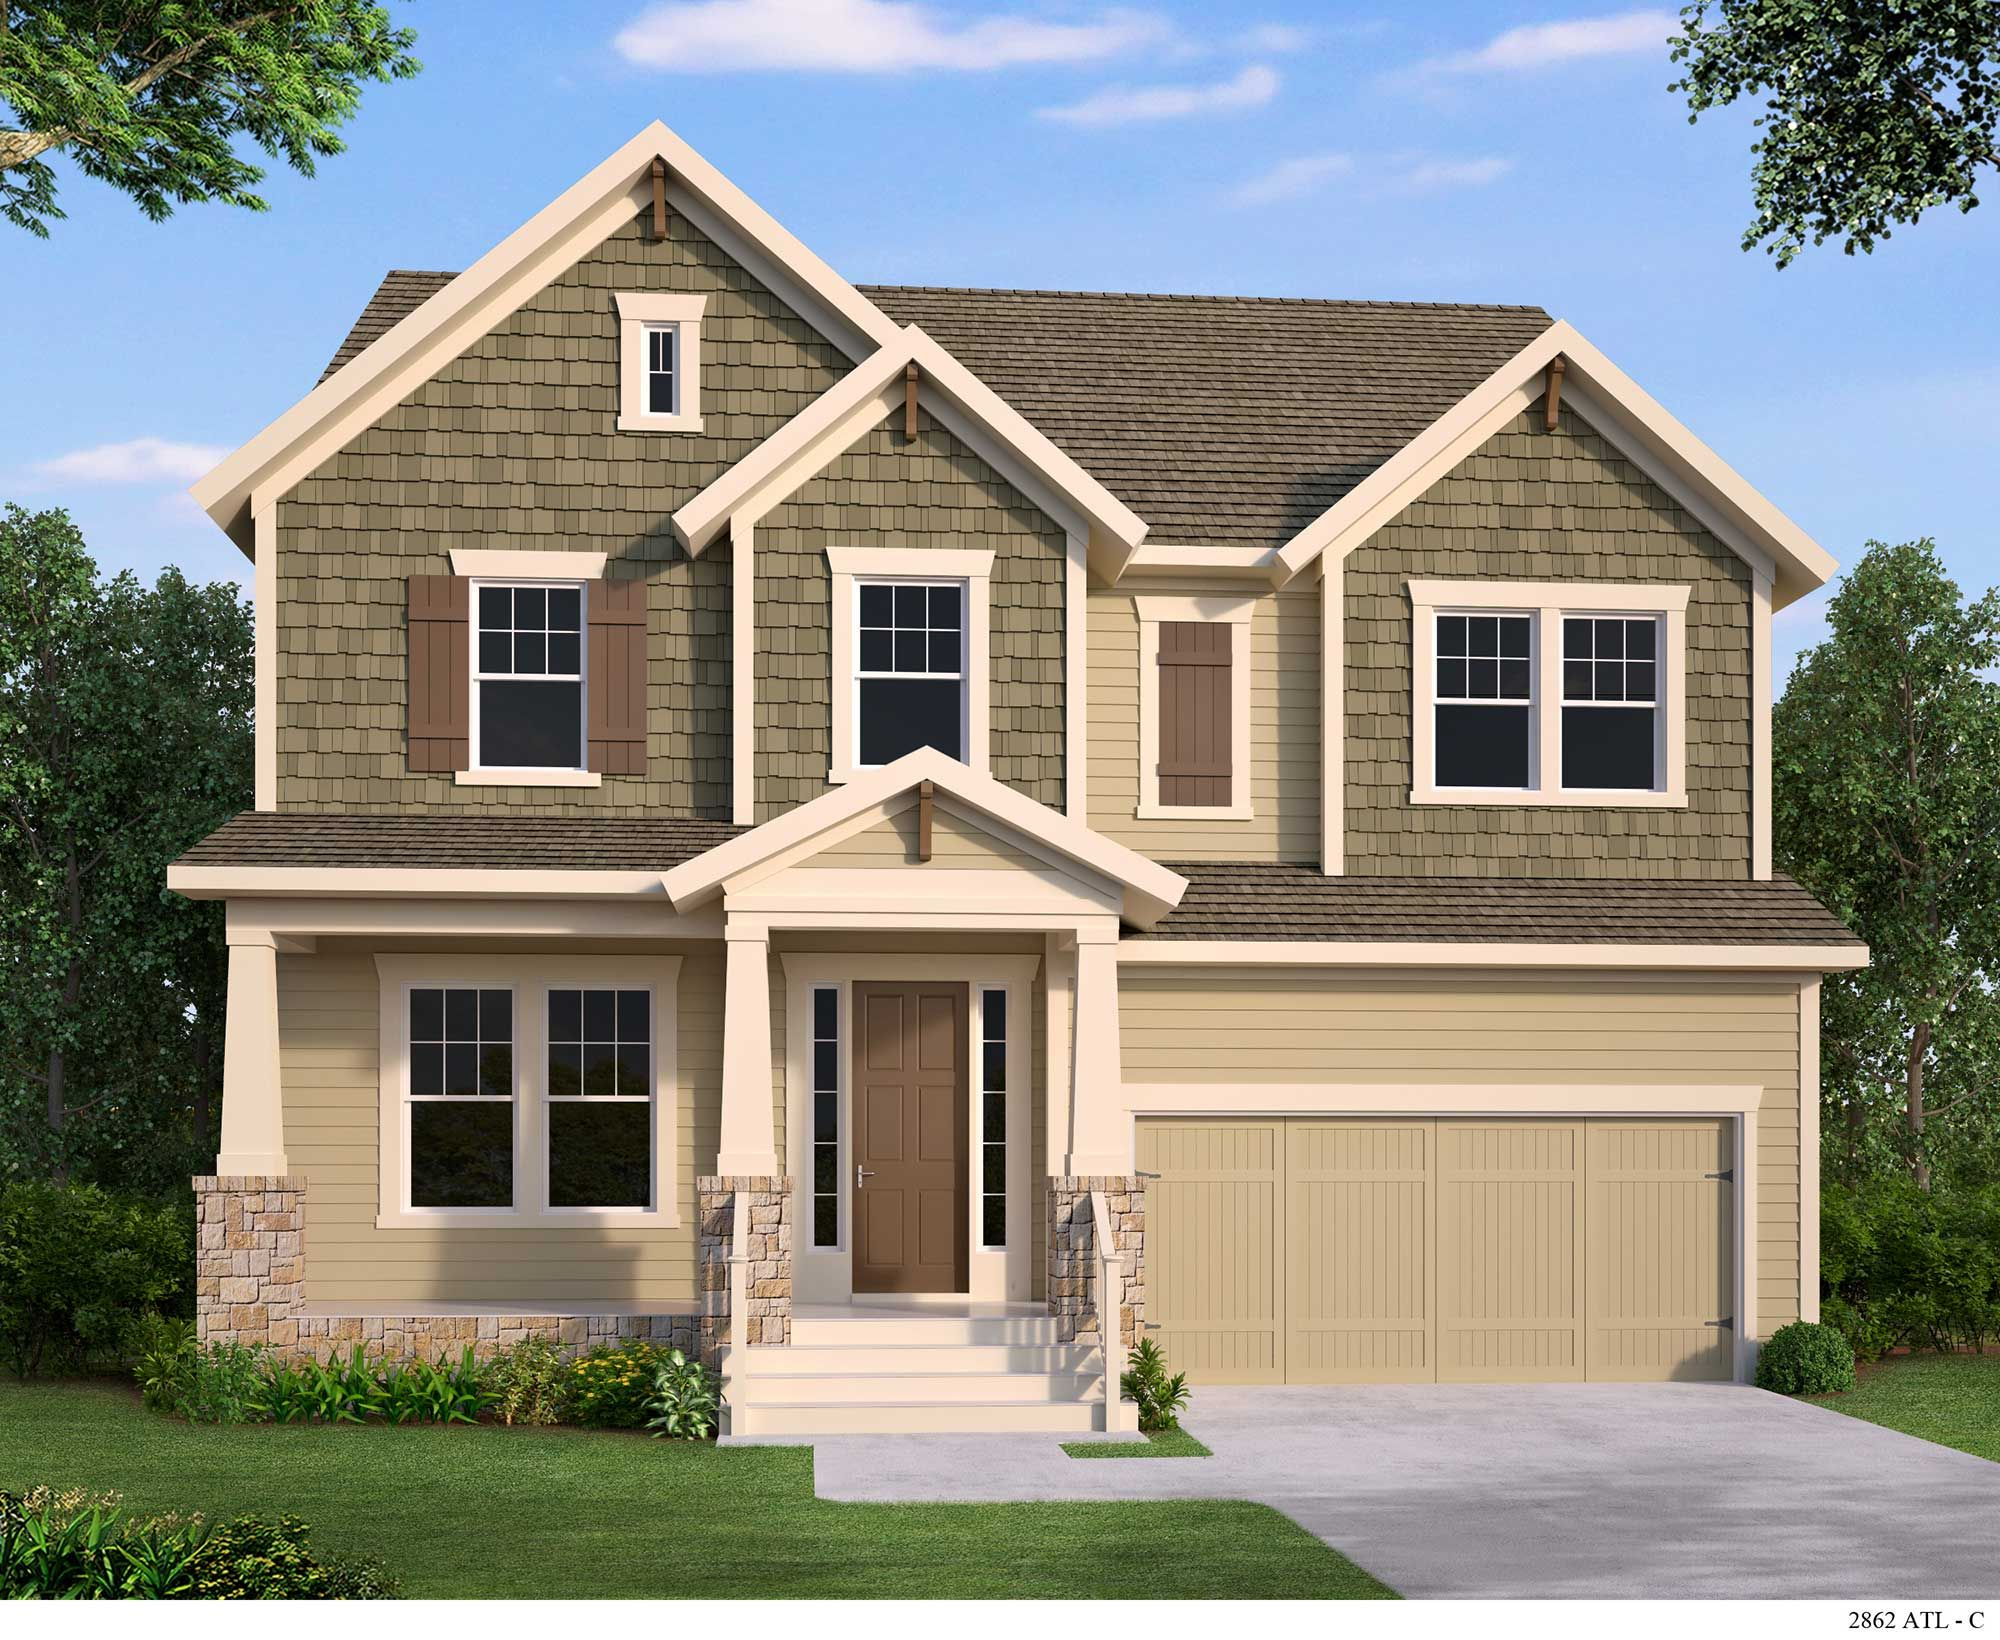 The thorngrove c exterior home builders home new homes